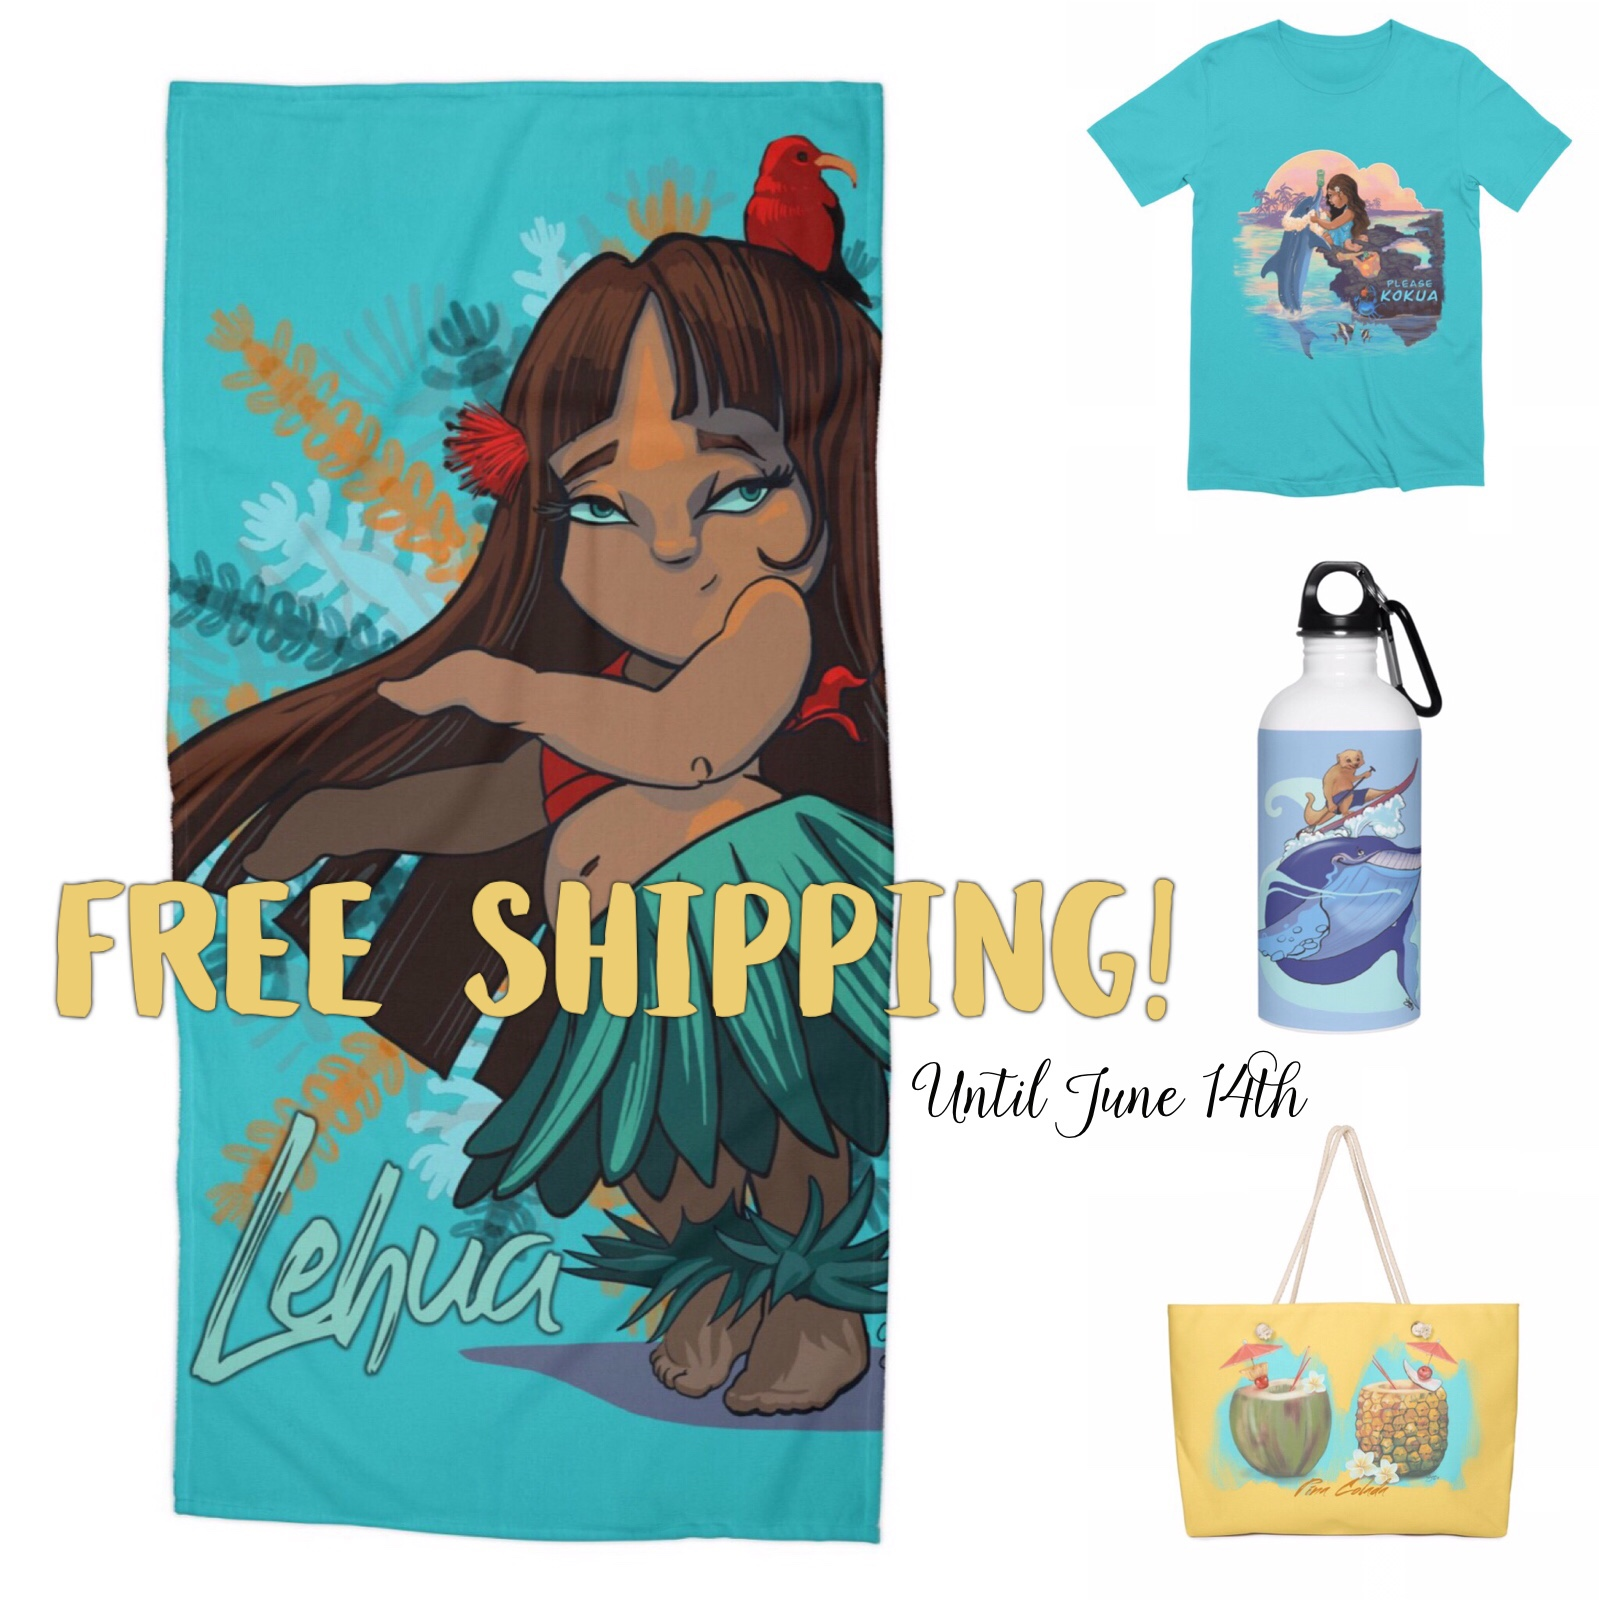 Get ready for Summer with FREE SHIPPING until June 14th!